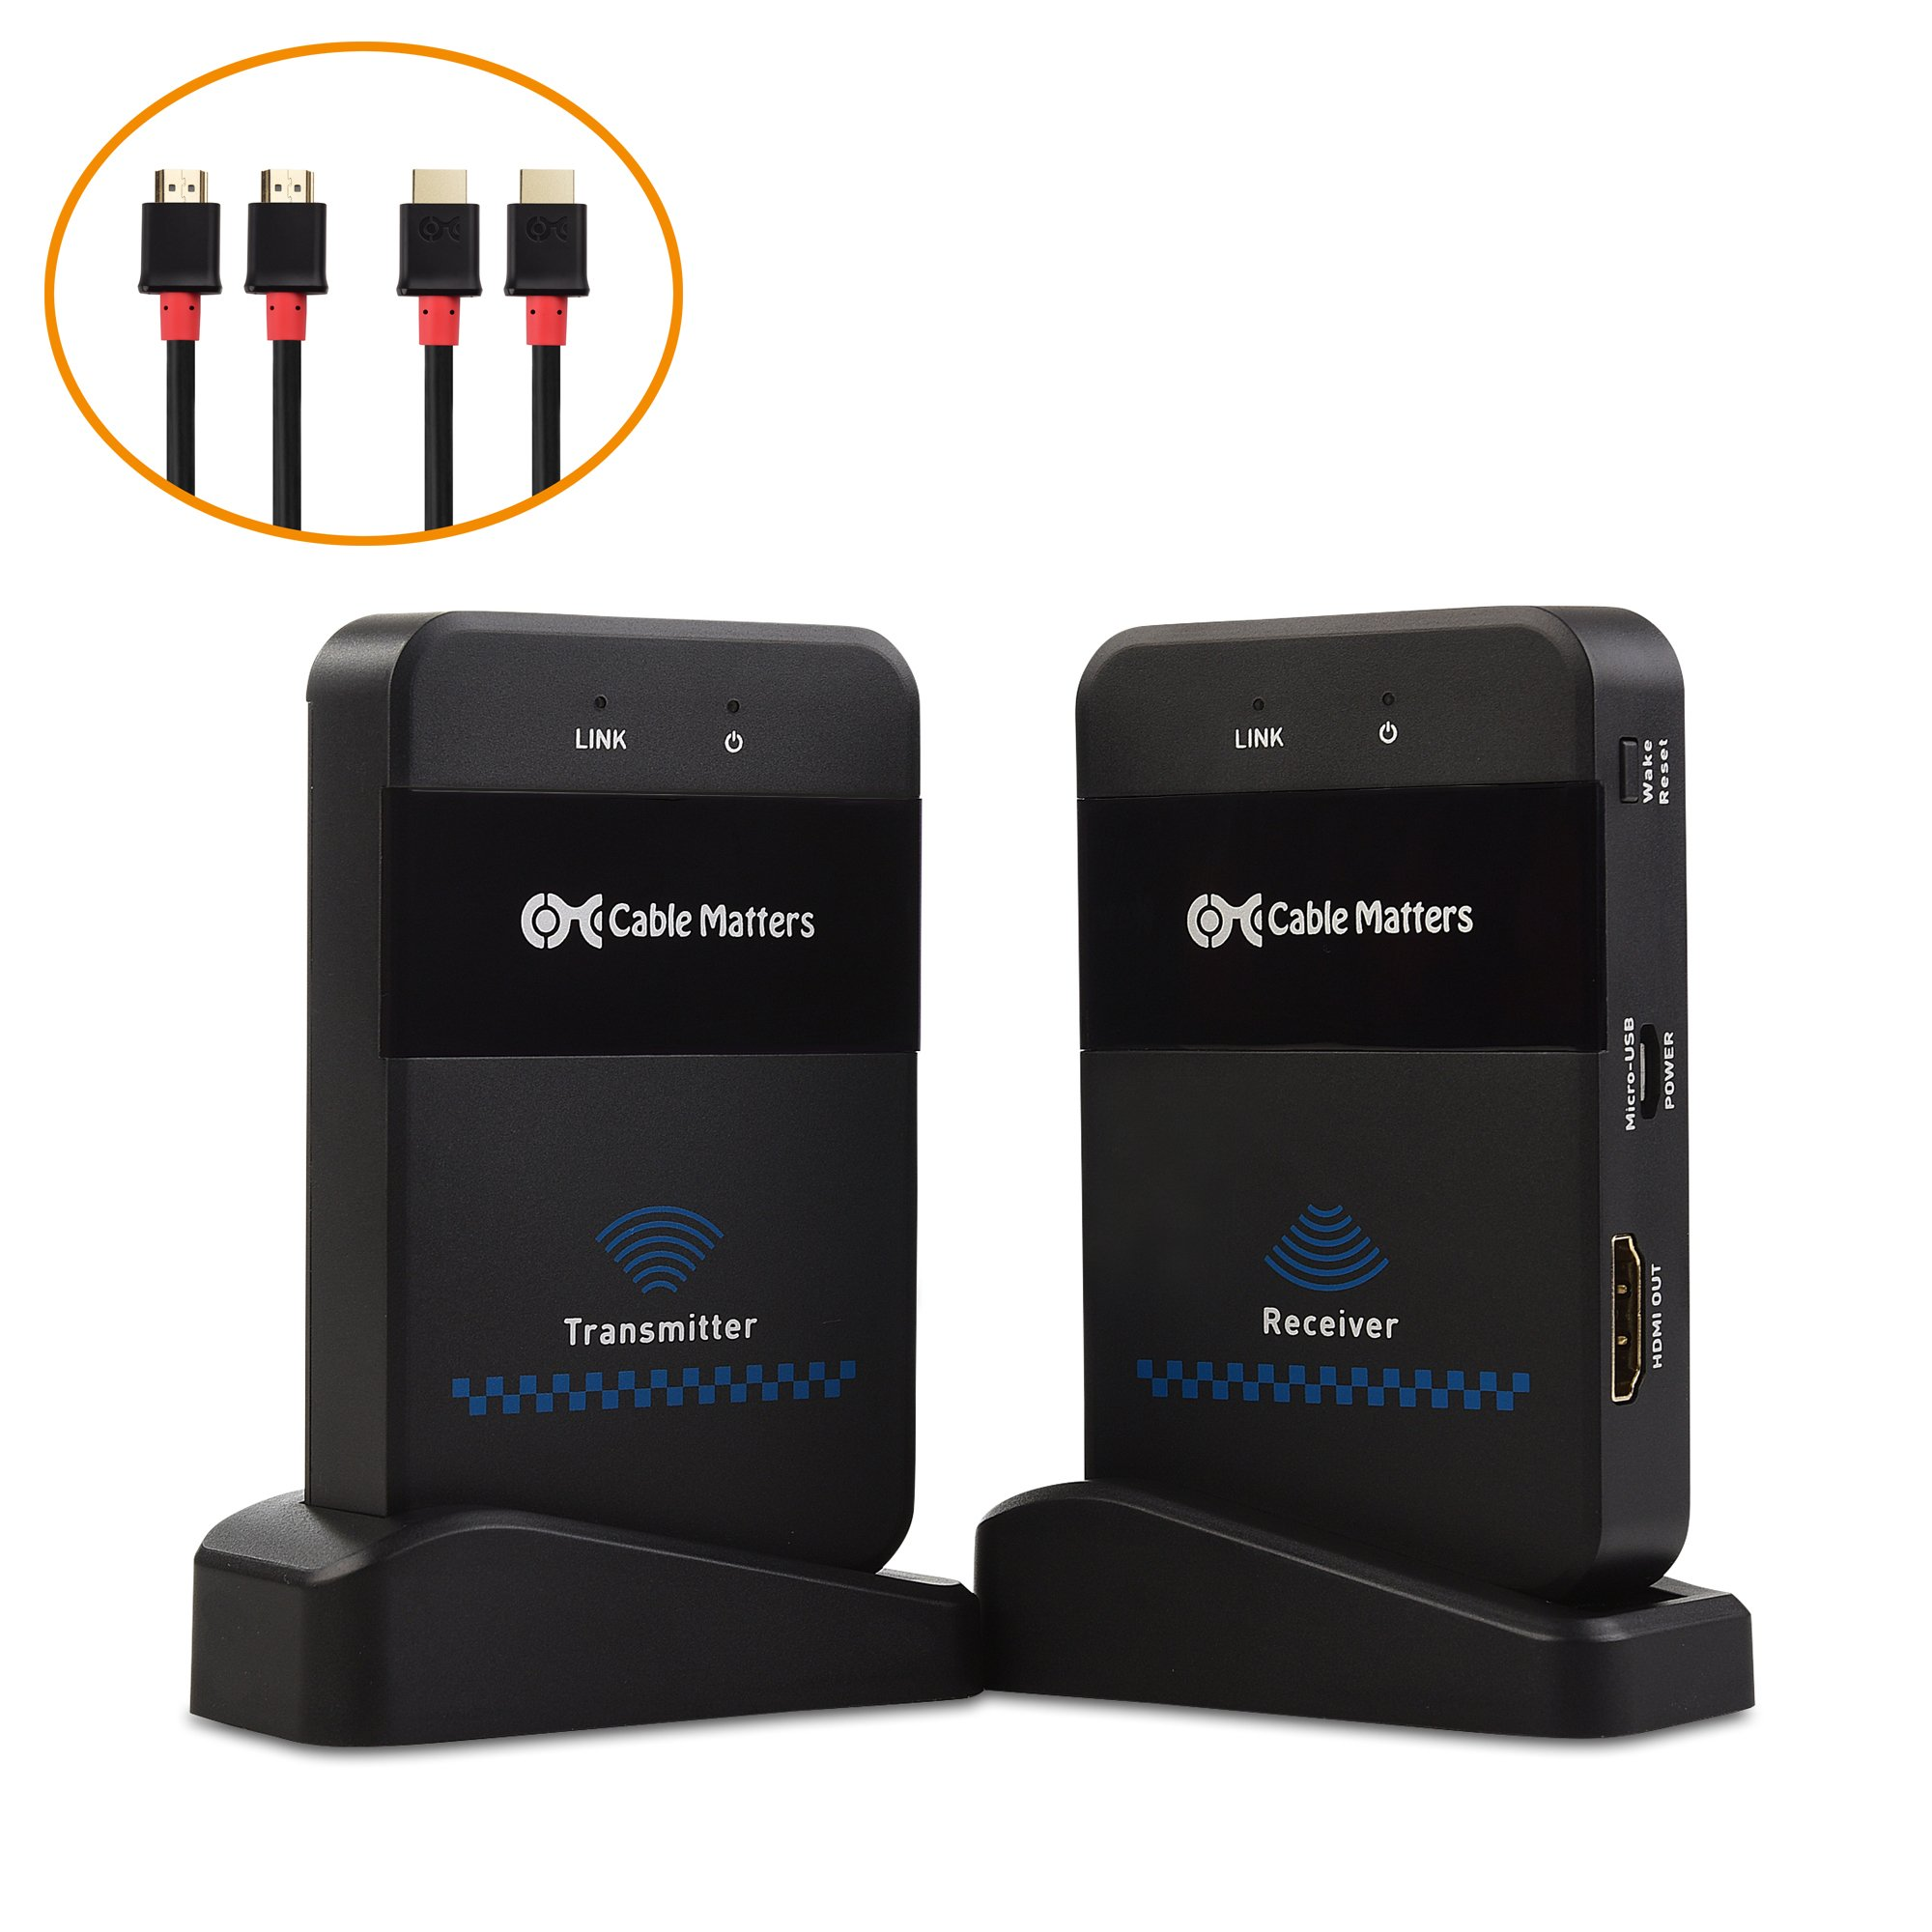 Cable Matters Wireless HDMI Extender with Twin Pack of HDMI Cables